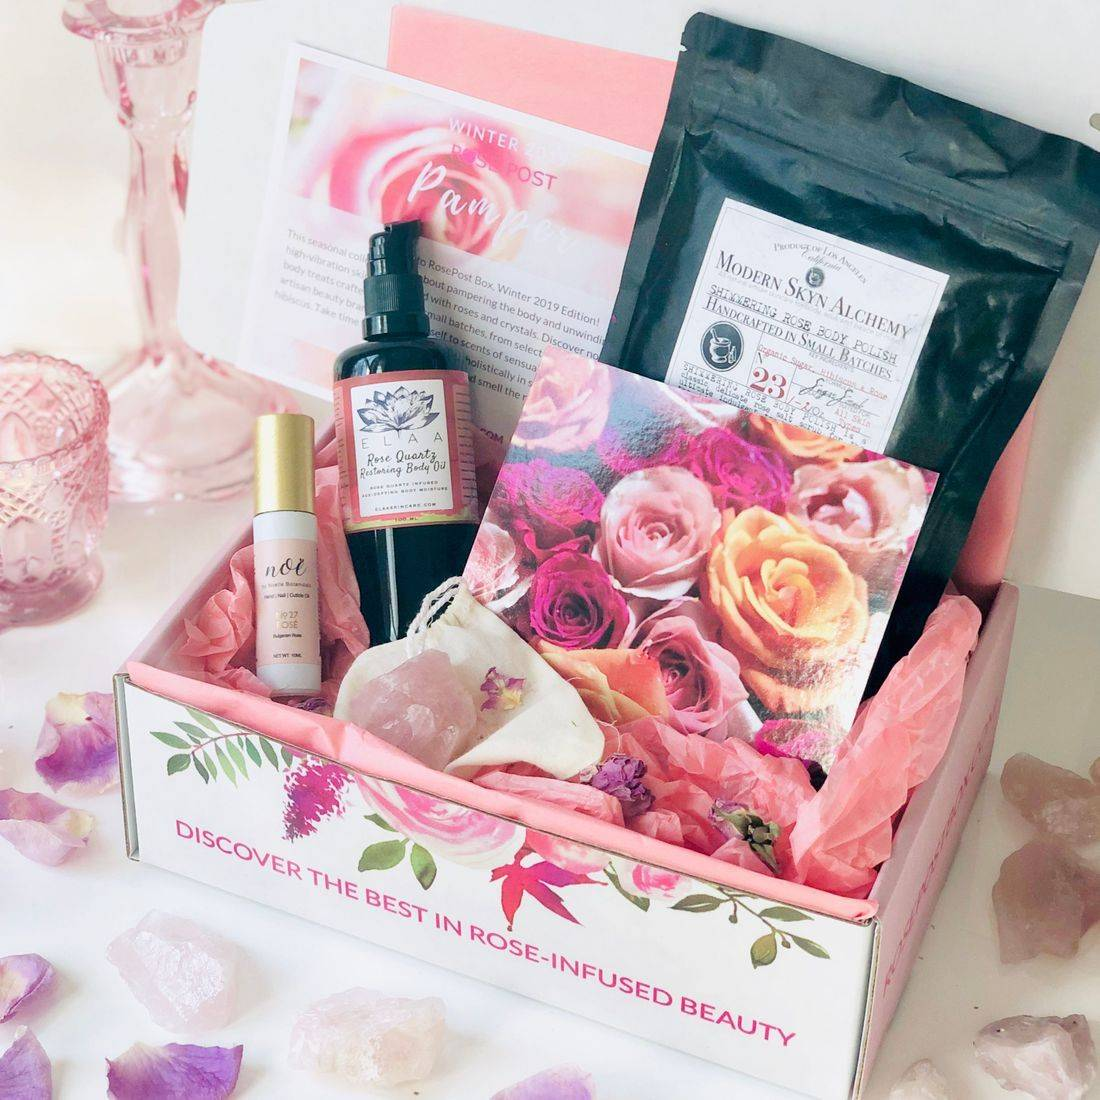 best rose-infused skincare valentine's day, crystal-infused skincare, rose beauty, best rose beauty, organic rose-infused pampering treats, rose beauty box